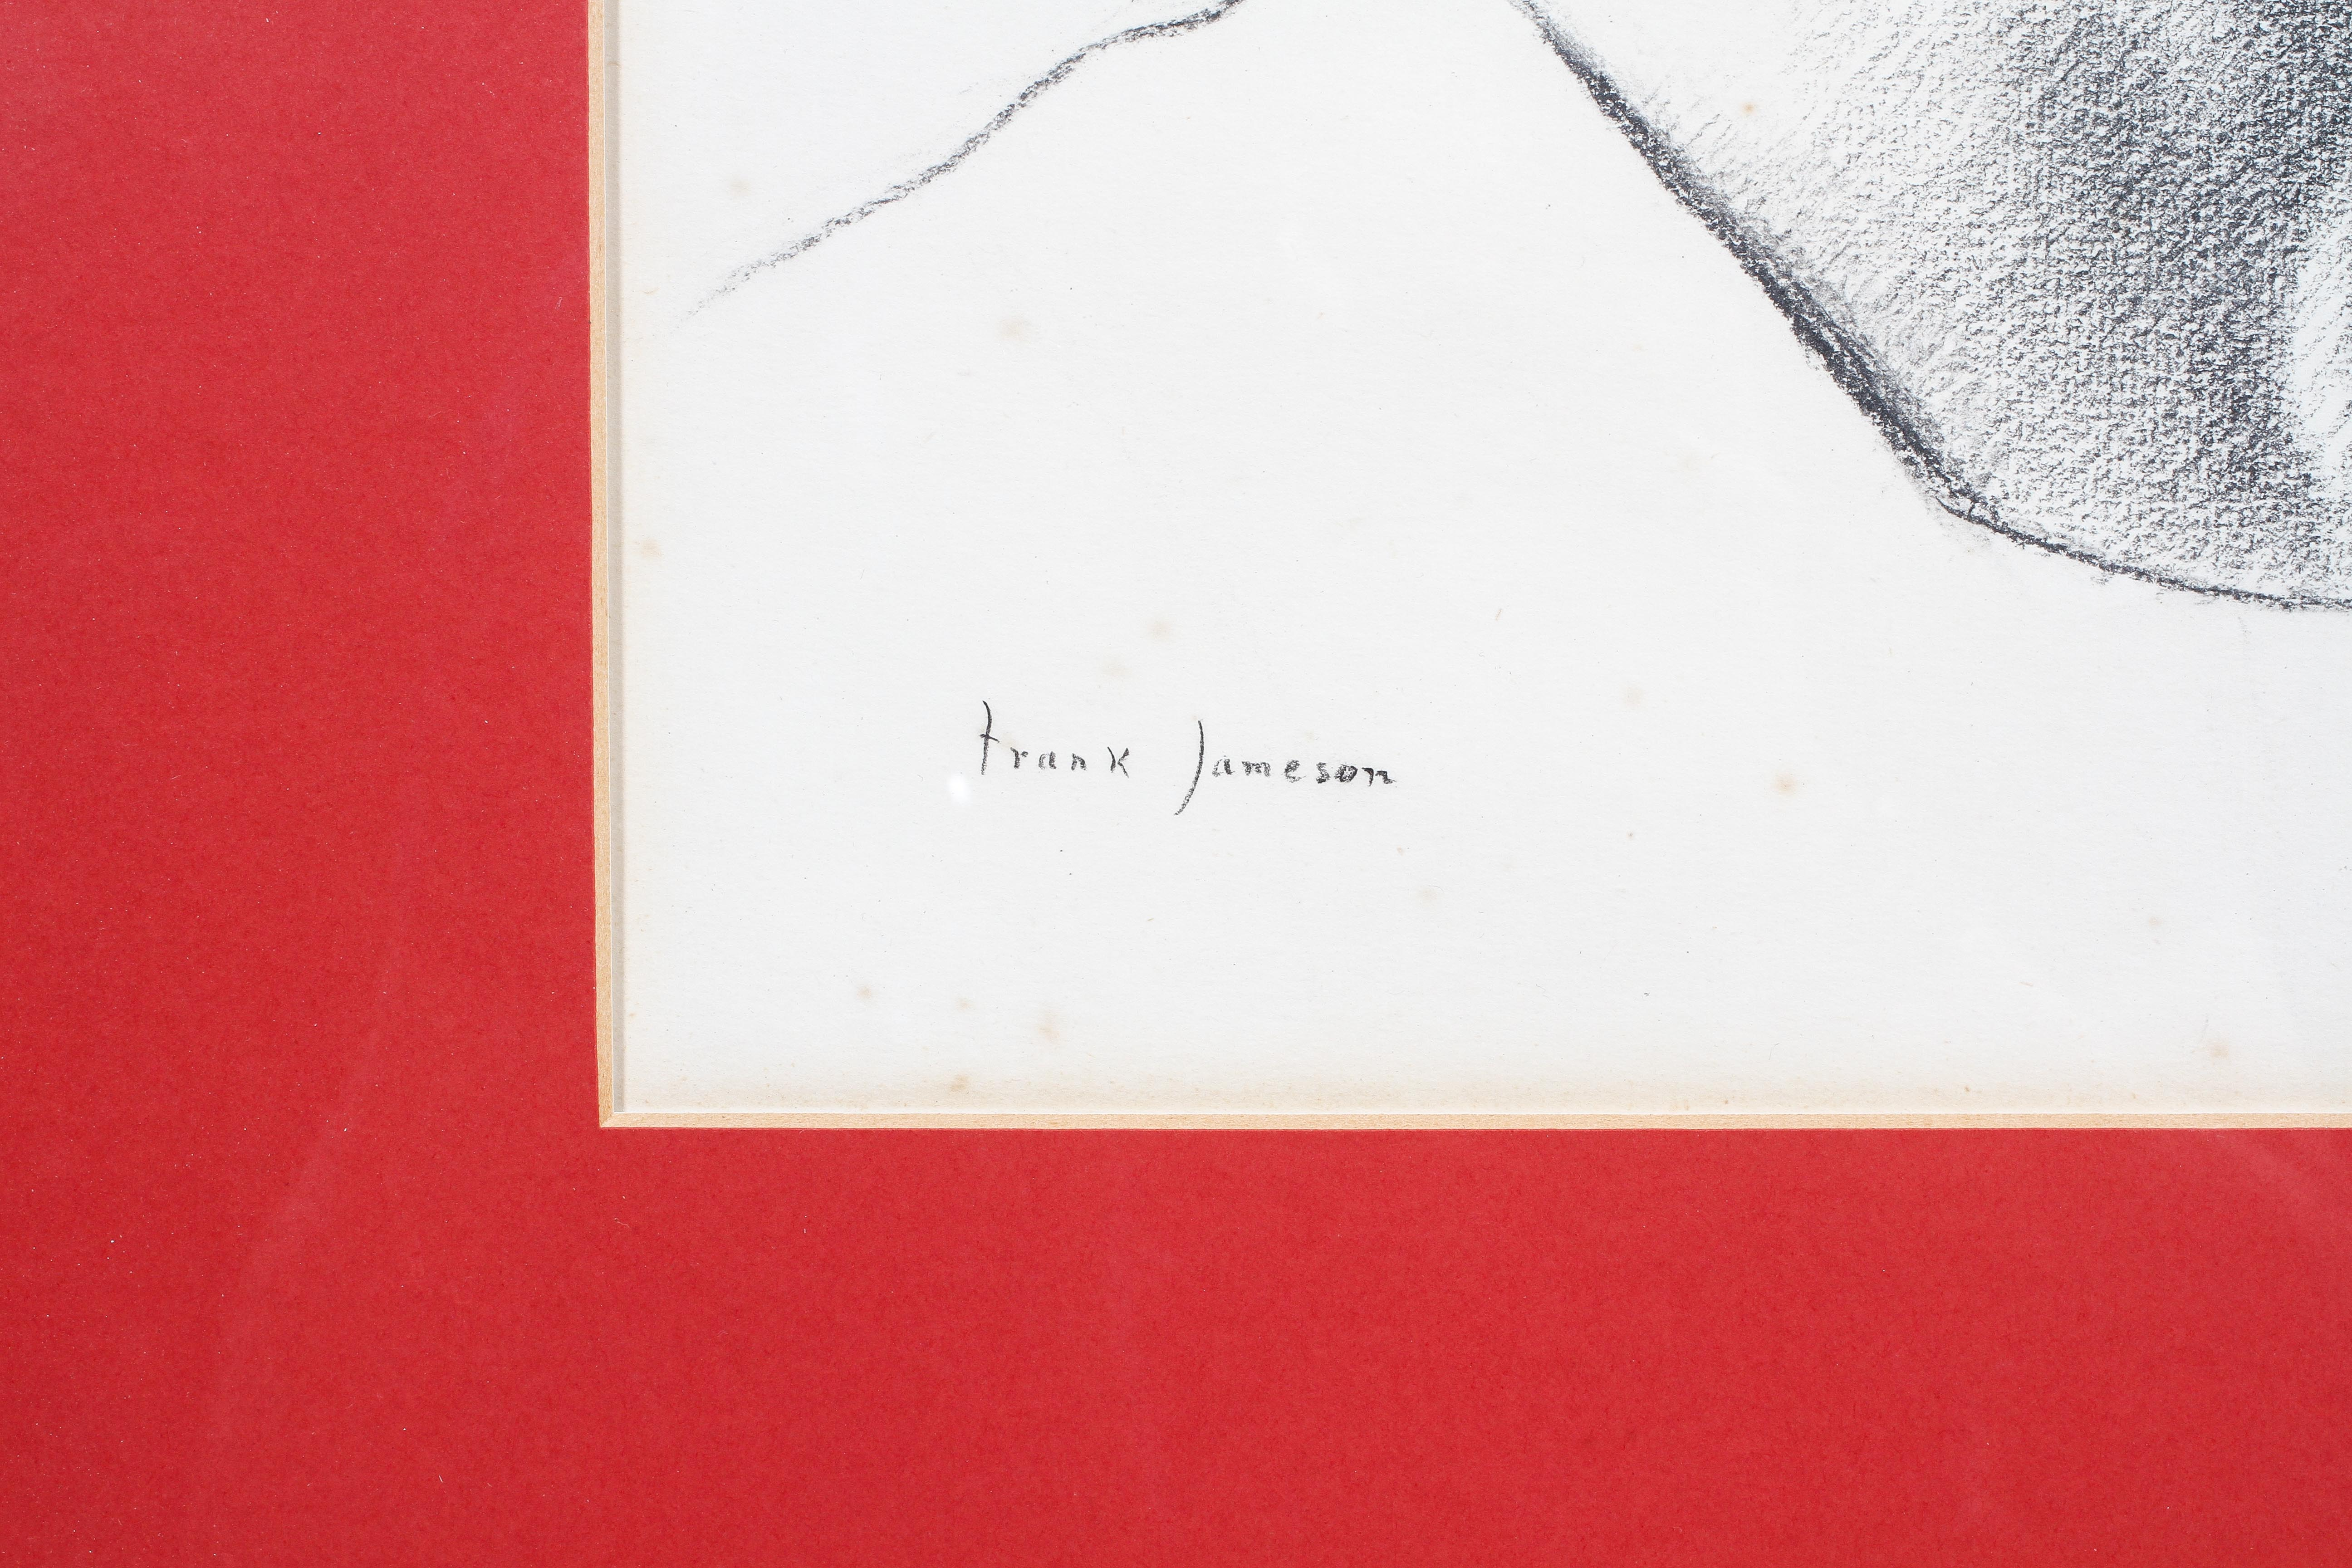 Frank Jameson, pencil portrait of his daughter, signed lower right, glazed and framed, - Image 3 of 4